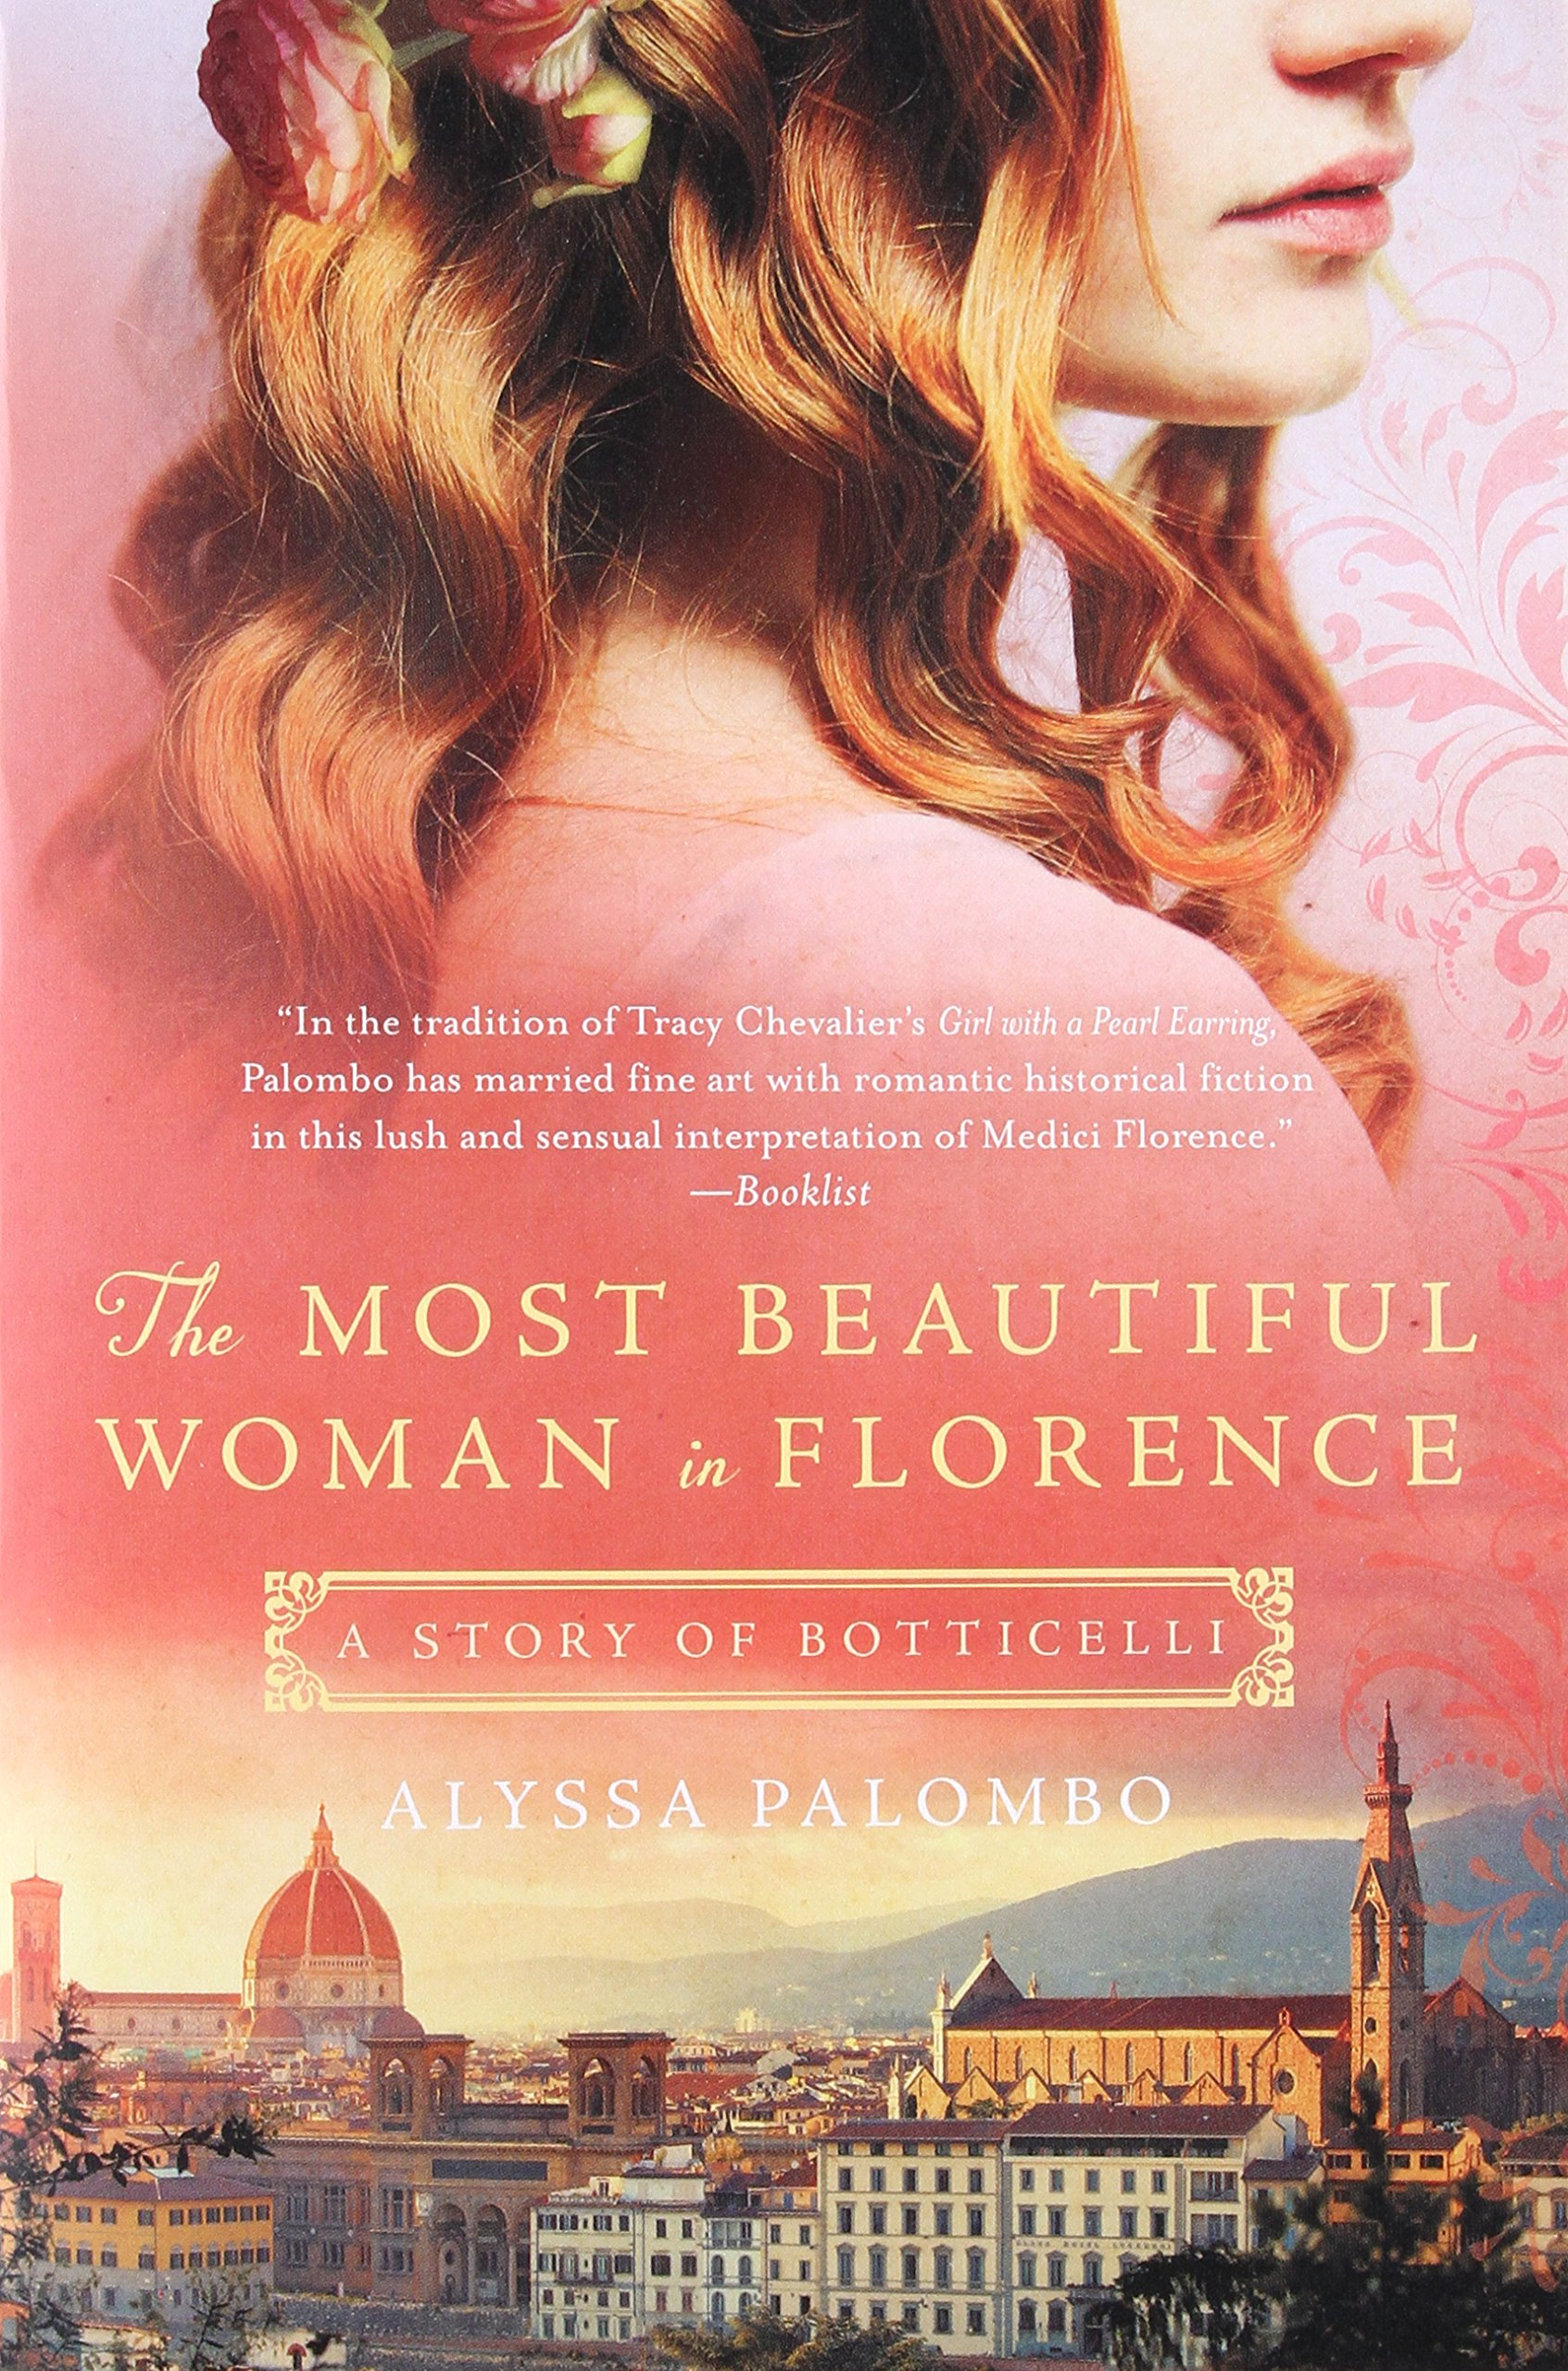 Amazon.com: The Most Beautiful Woman in Florence: A Story of ...